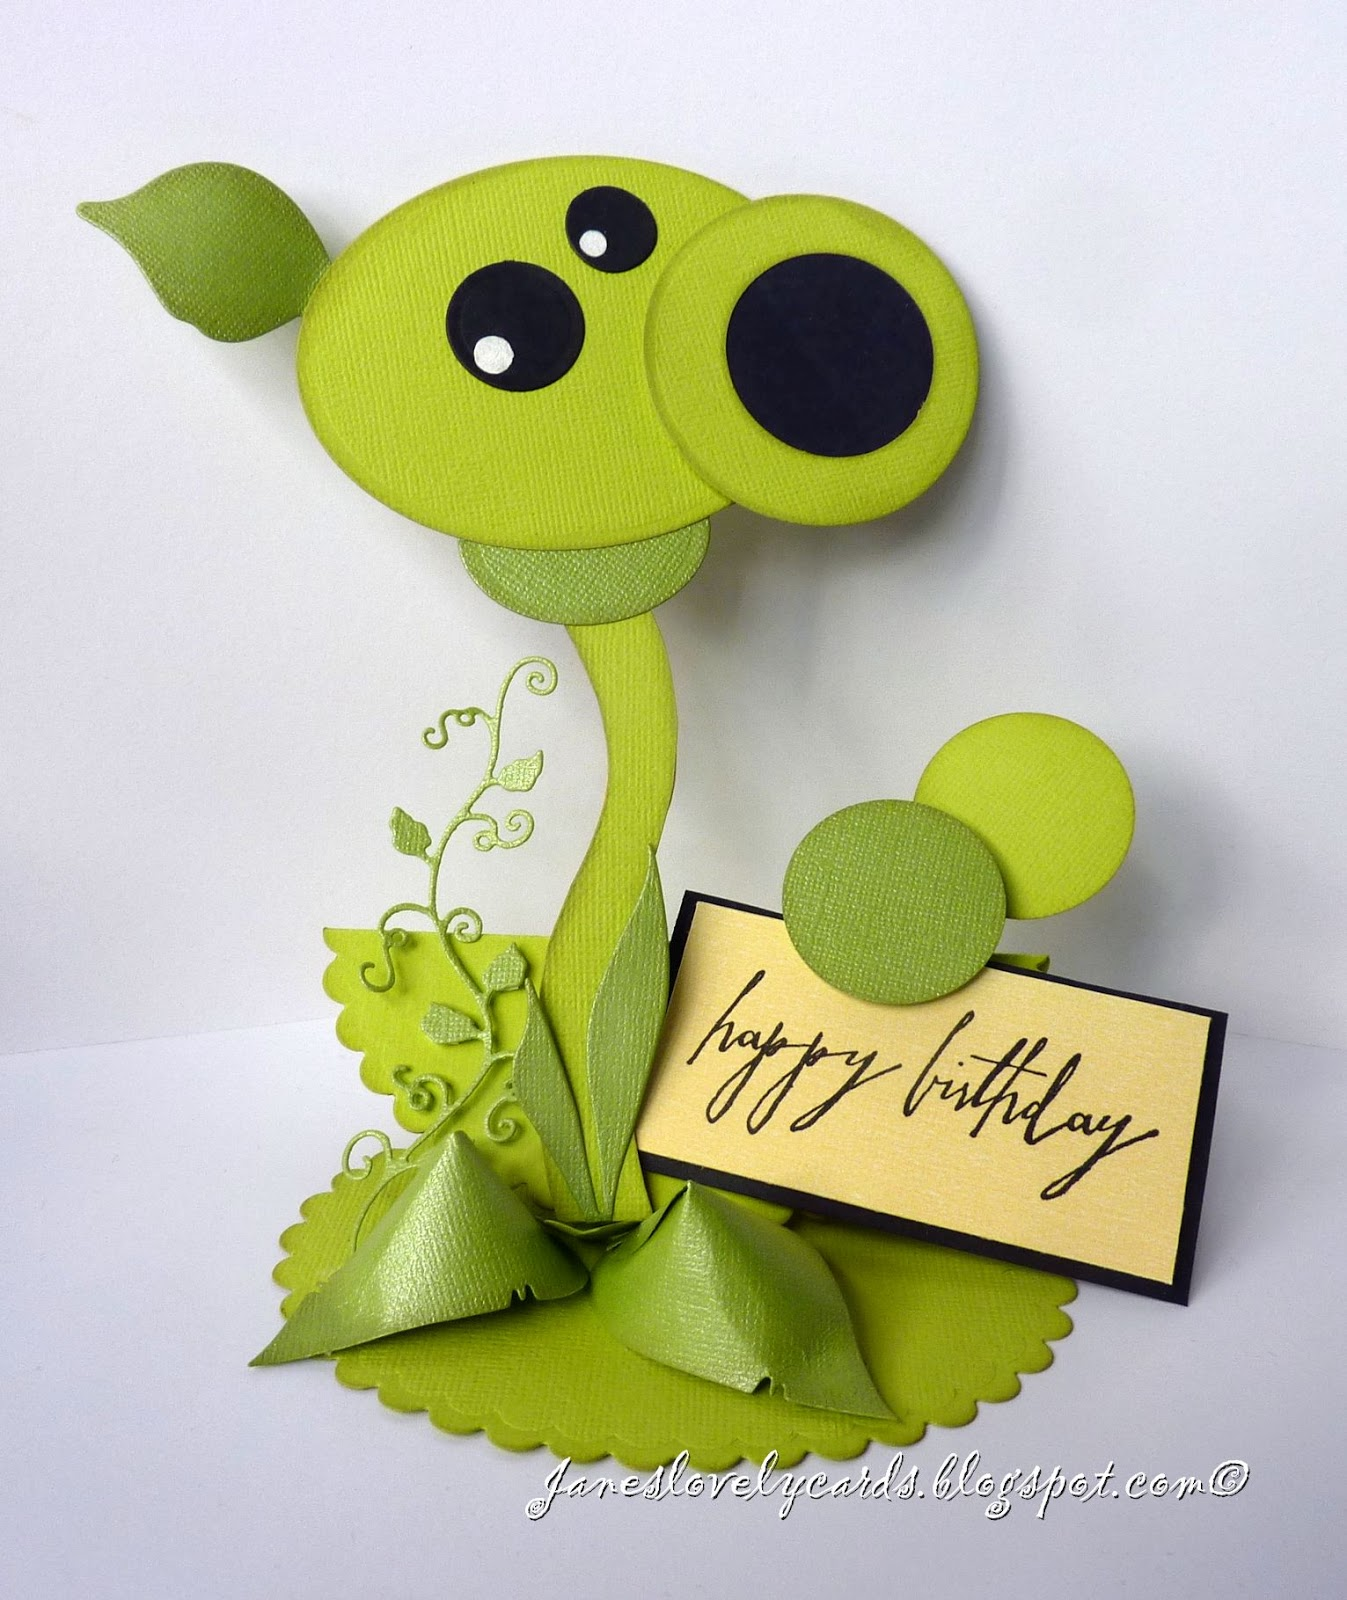 Janes lovely cards plants vs zombies birthday card something a little different from my normal style of card to share today i made this easel card for my sons birthday in the form of a character from one bookmarktalkfo Choice Image